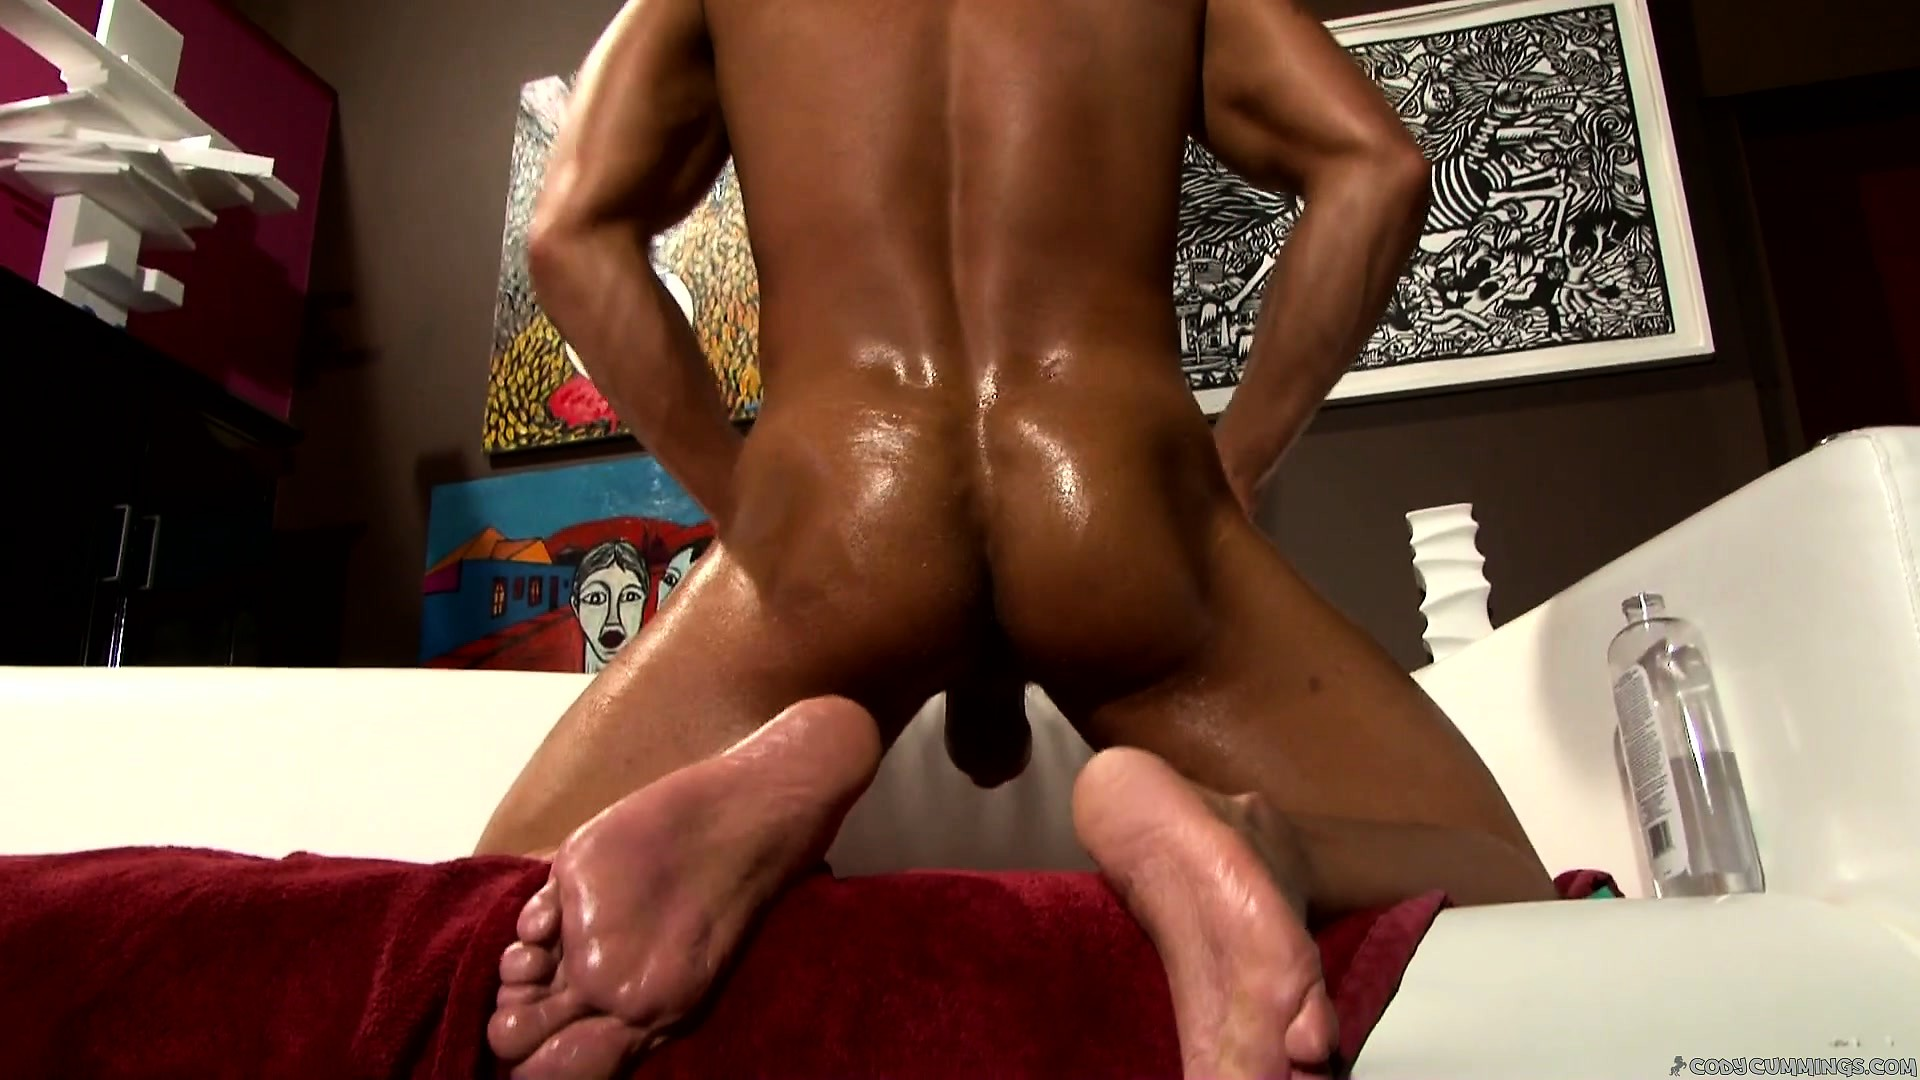 Porn Tube of Now He Shows Off His Nice Ass, Fingers It, And Gives His Cock A Good Tug